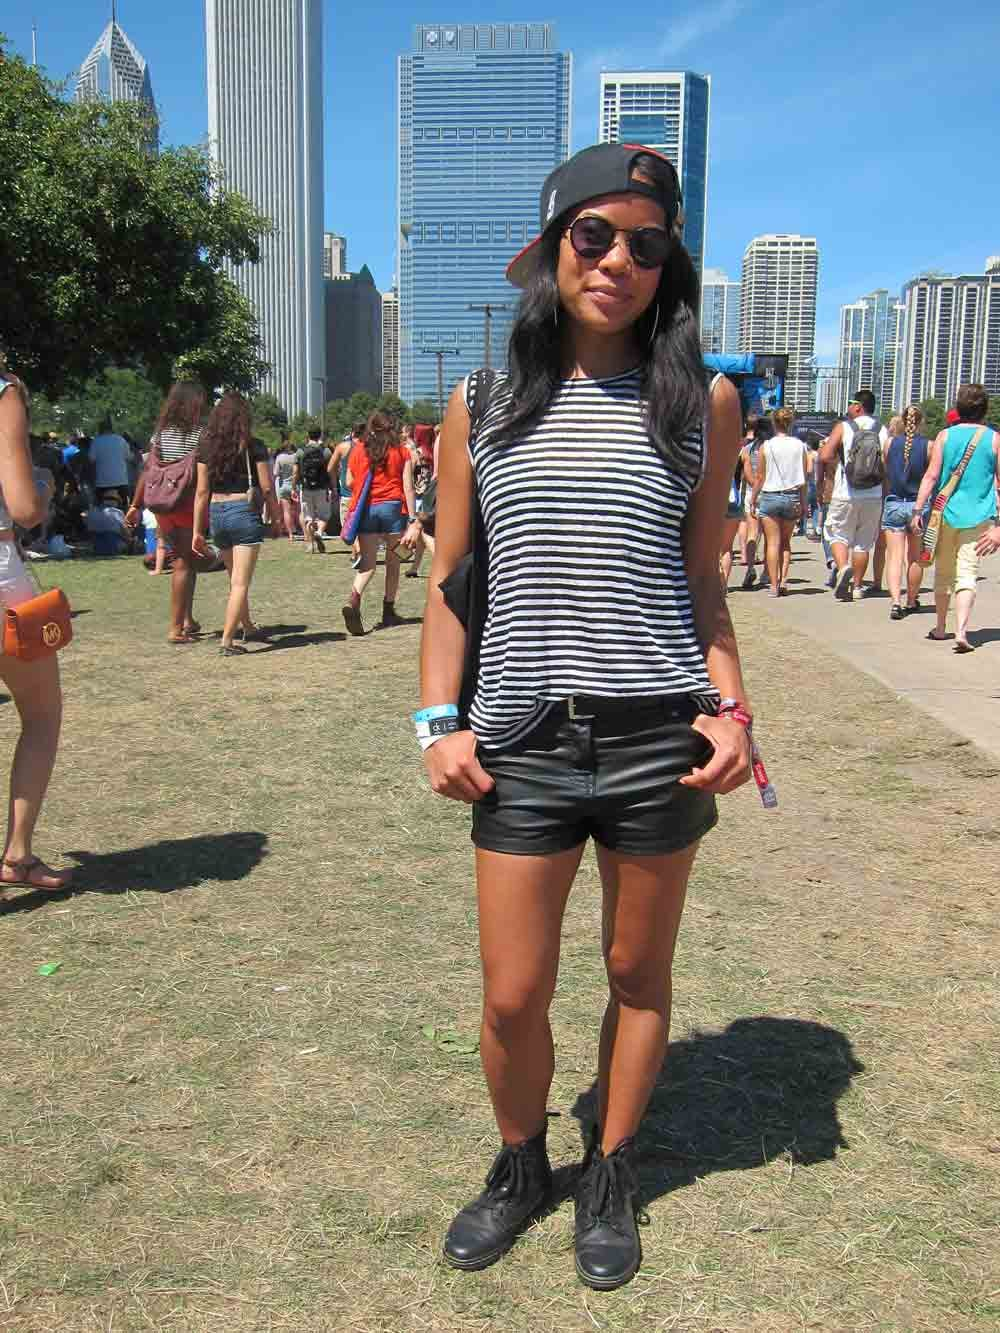 Forget flower crowns and bohemian ruffled dresses: for Jamie, this festival was all about street wear, from leather shorts and backward Chicago Bulls baseball caps to Doc Martens.